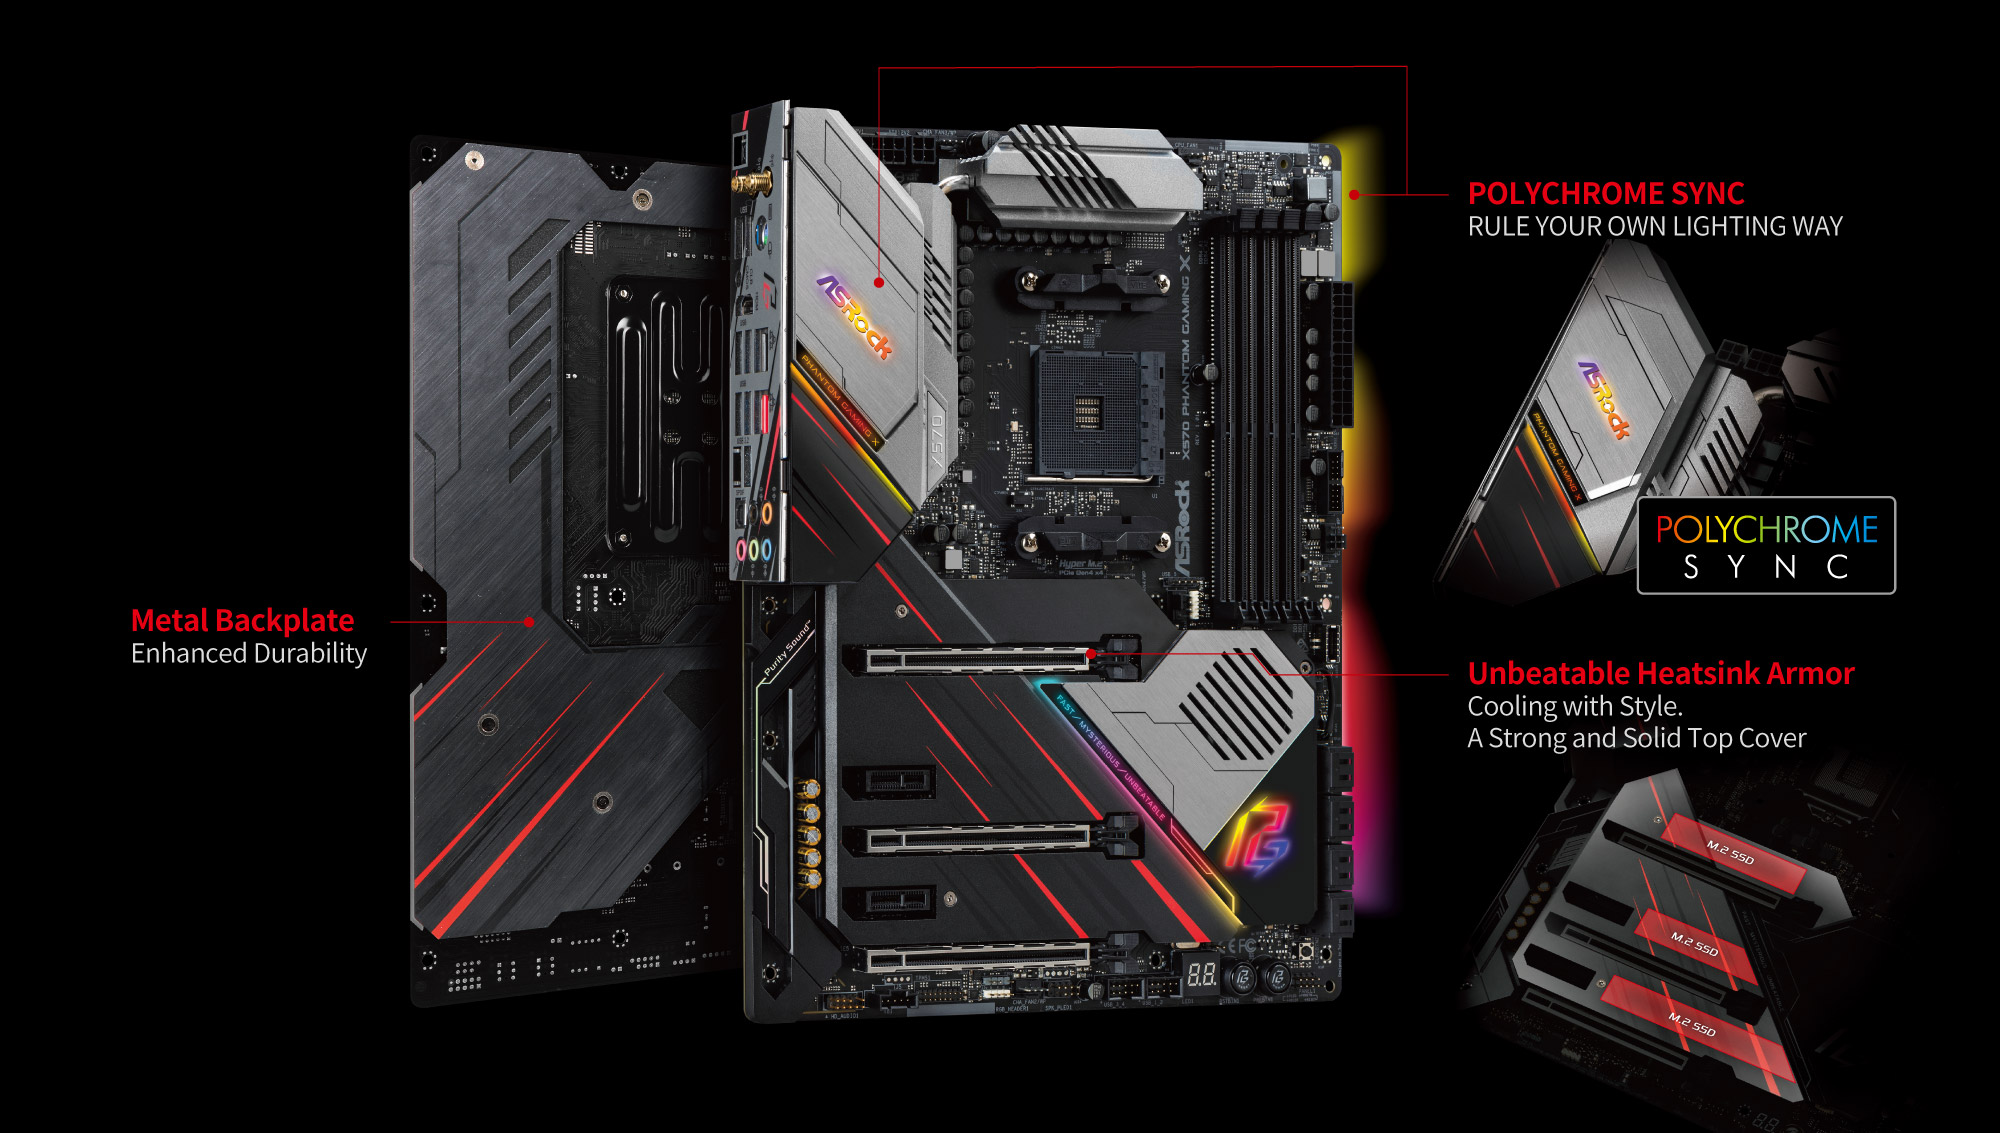 Two ASRock X570 Phantom Gaming X Motherboard Back to Back along with text and graphics pointing out the following features: Metal backplate for enhanced durability, Polychrome Sync to rule your own lighting way and unbeatable heatsink armor to cool with style via this strong and solid top cover